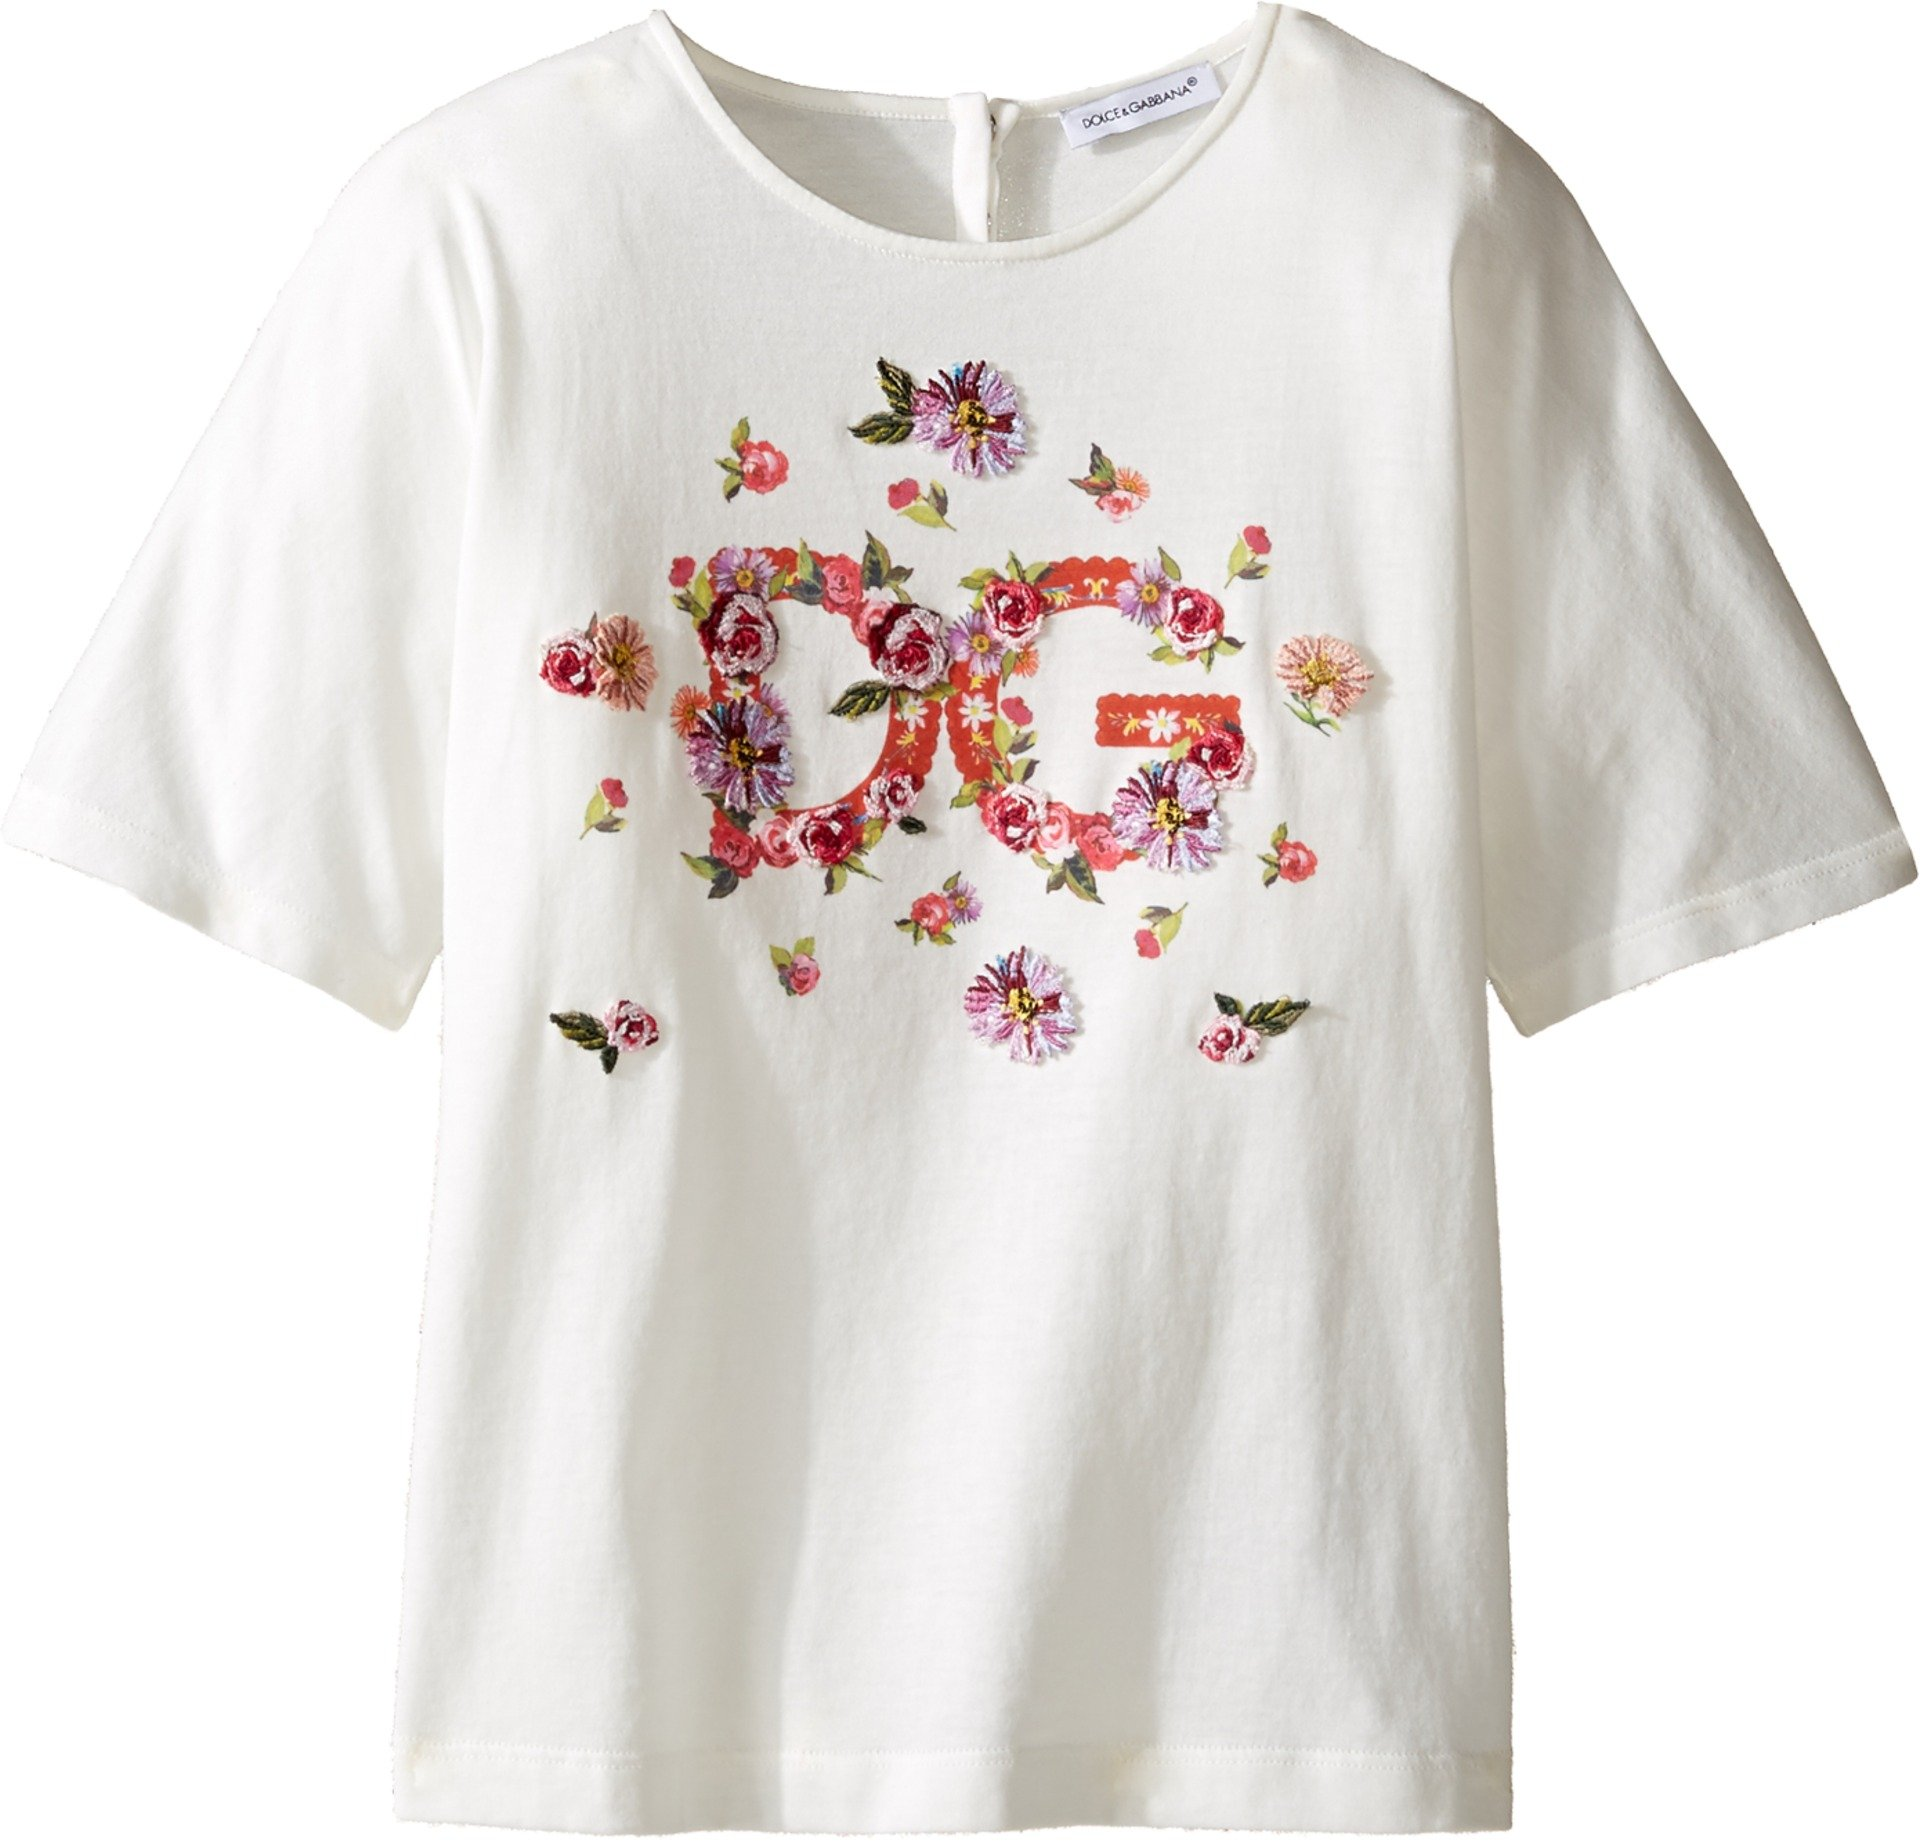 Dolce & Gabbana Kids Baby Girl's Mambo Logo T-Shirt (Toddler/Little Kids) Carretto Print T-Shirt